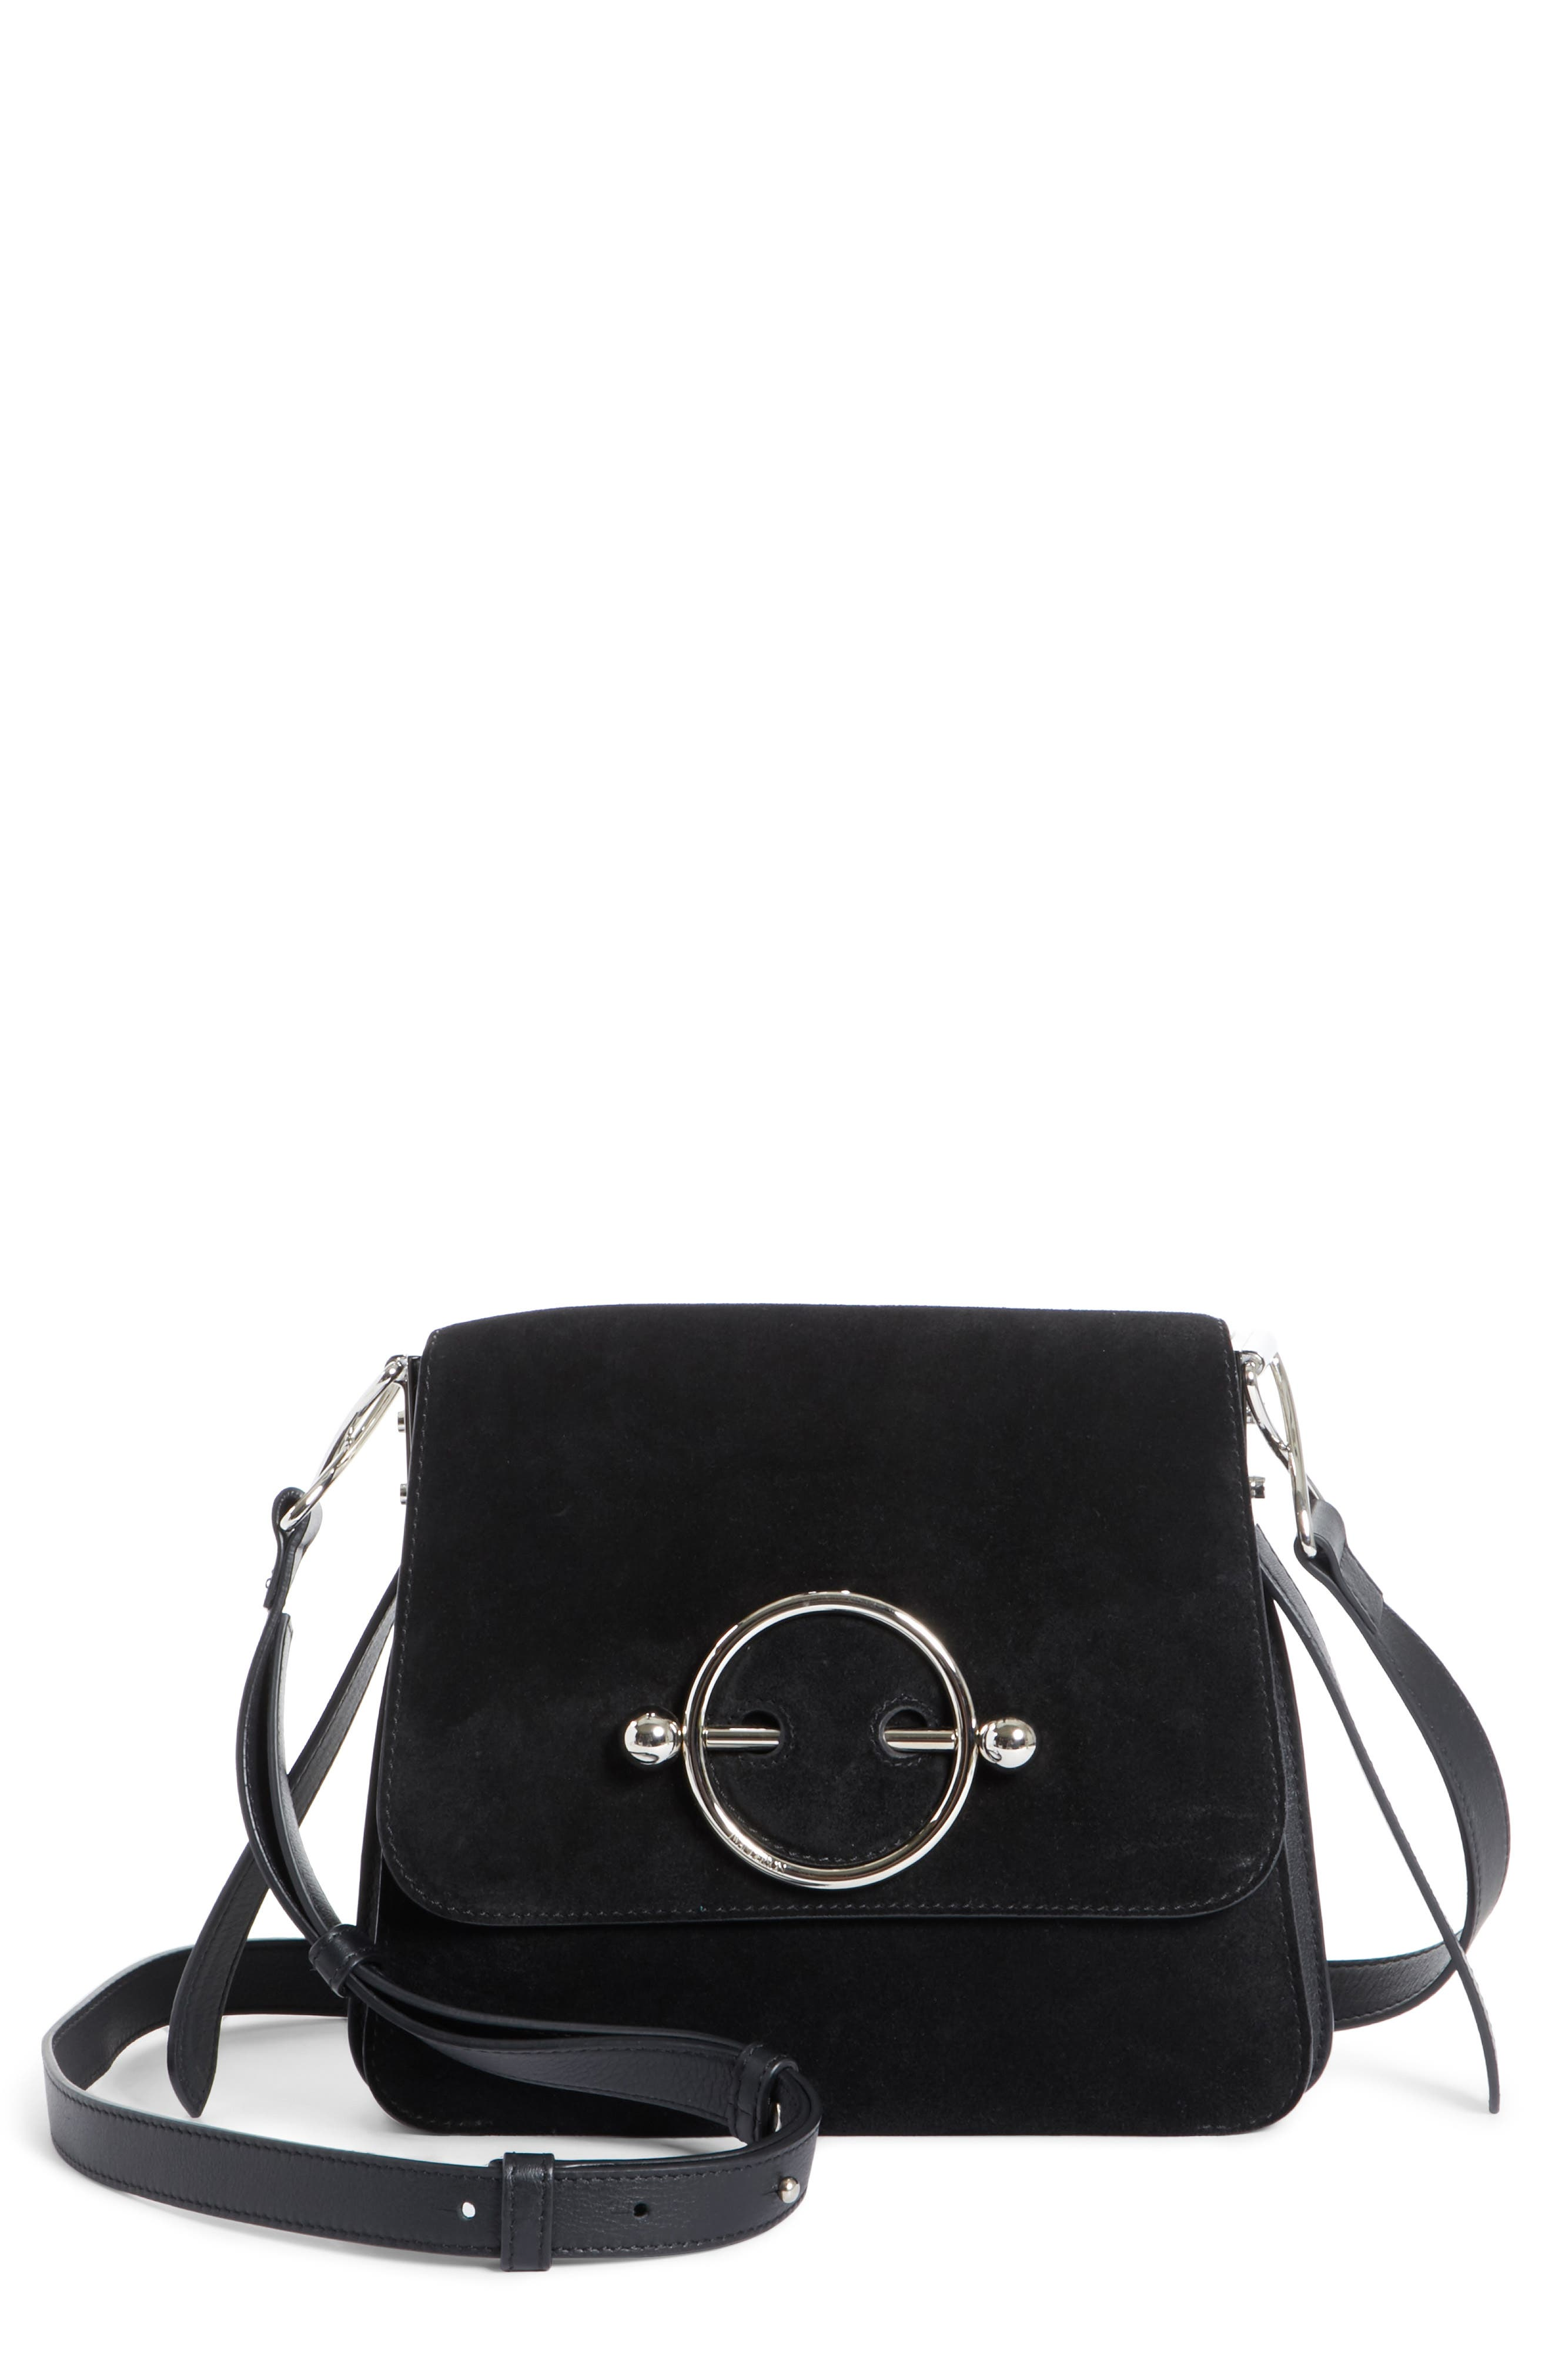 J.W.ANDERSON Disc Crossbody Bag,                         Main,                         color, Black